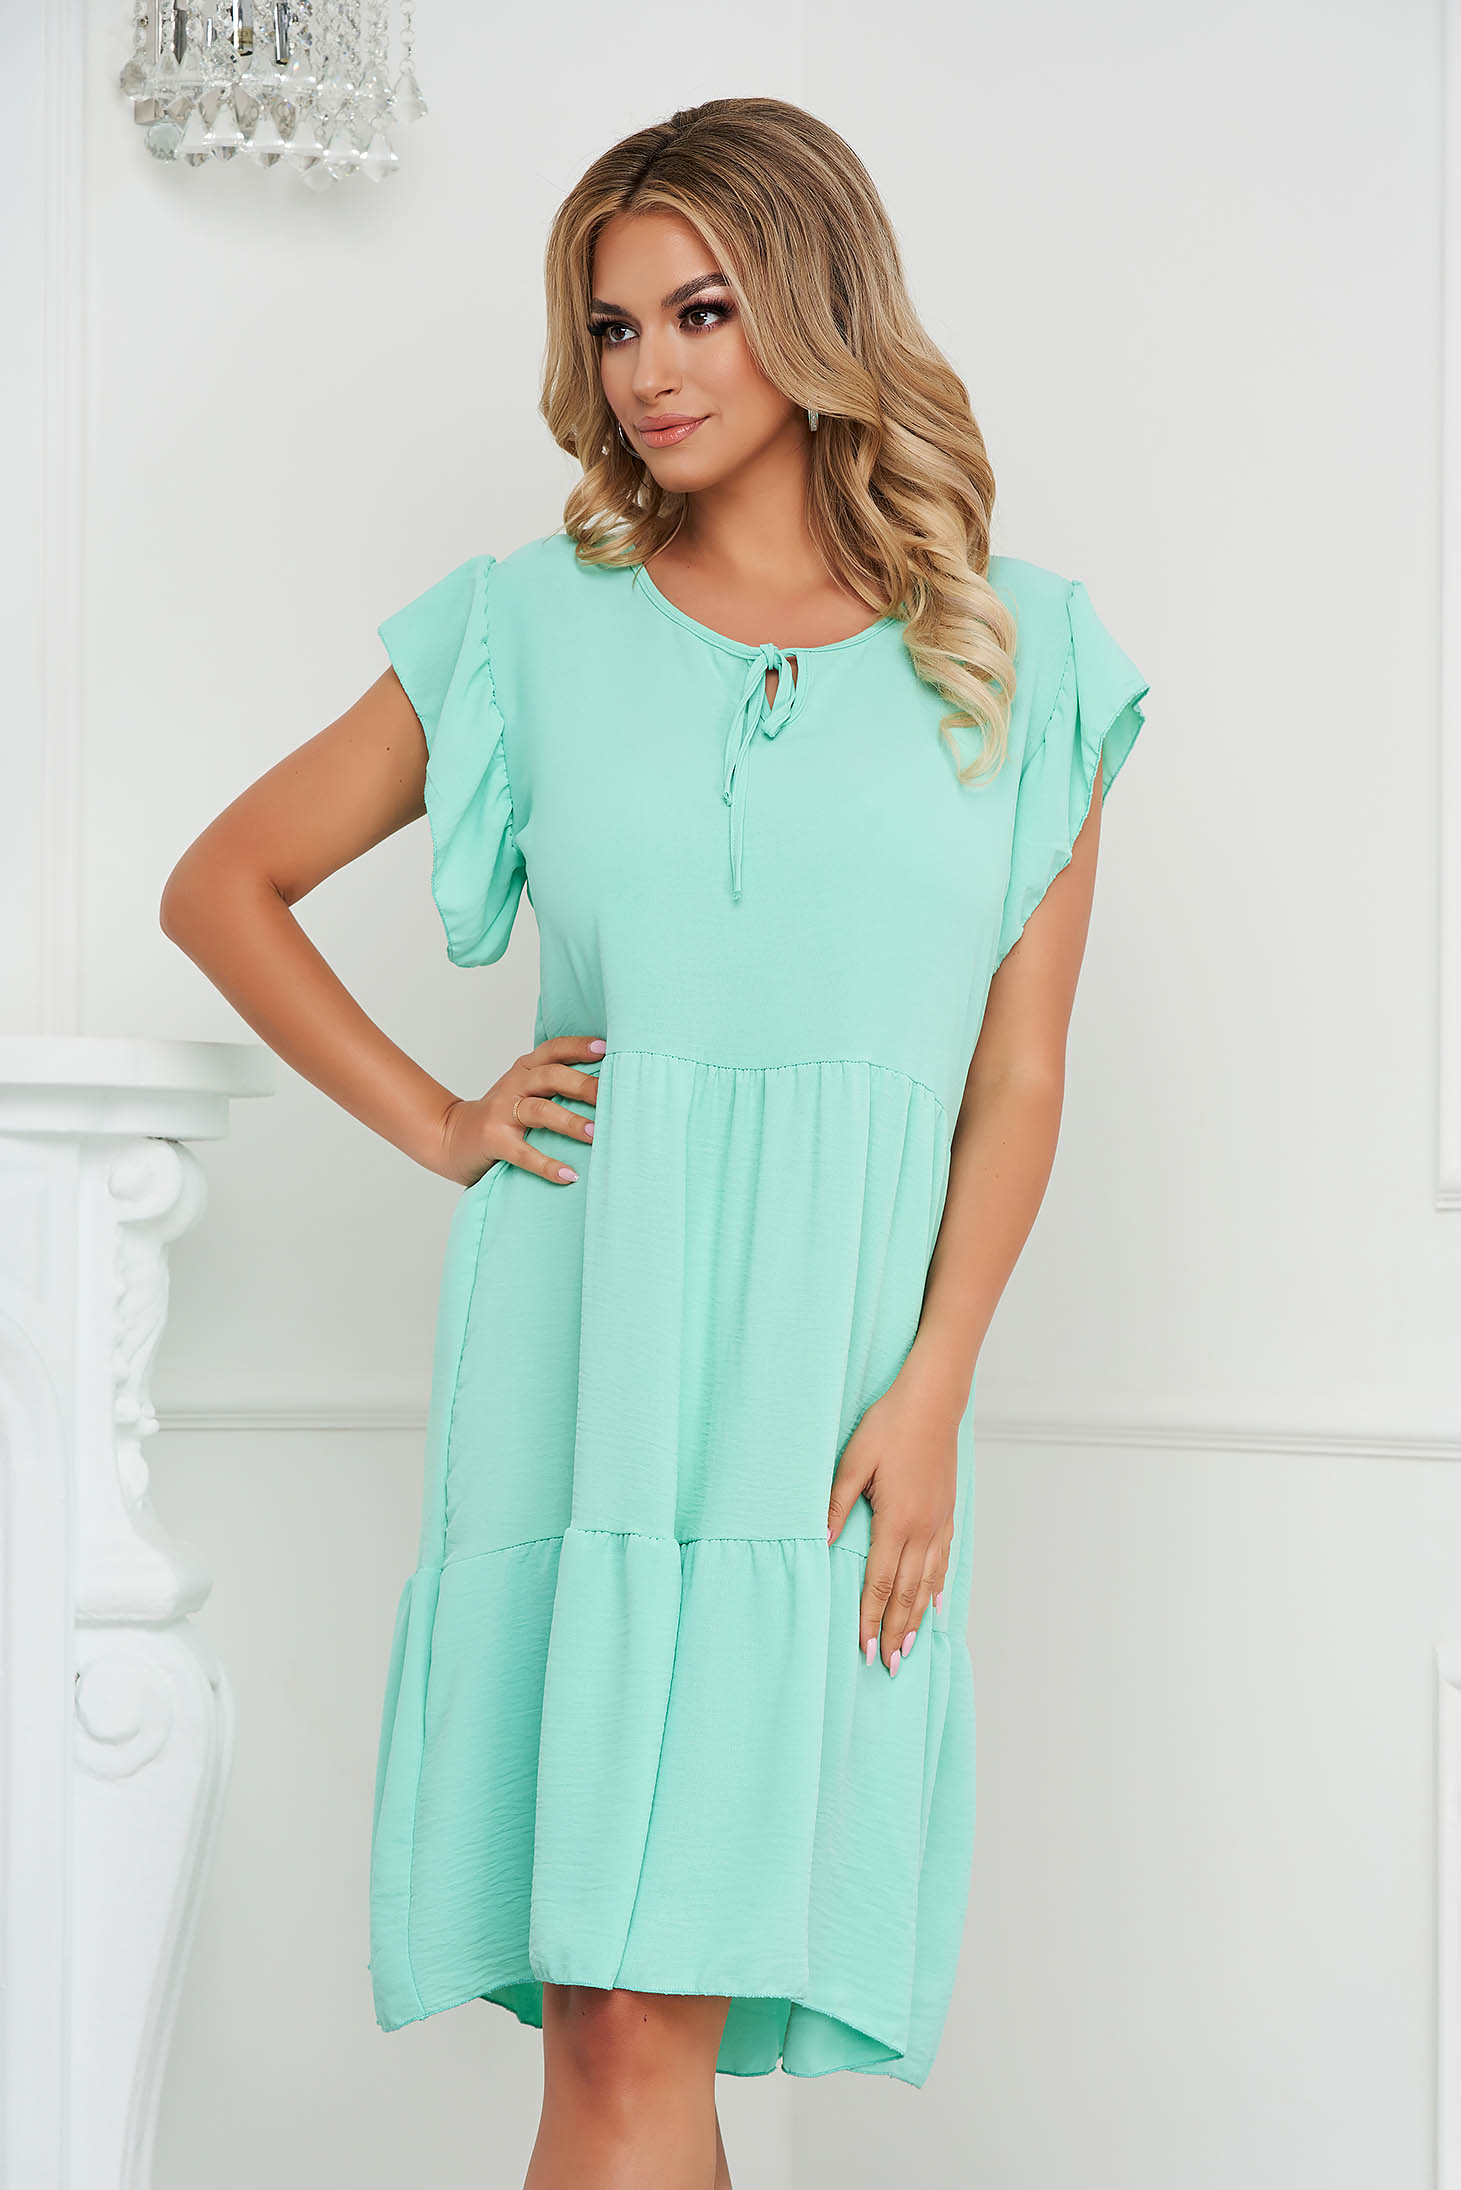 Mint dress midi loose fit airy fabric with ruffle details